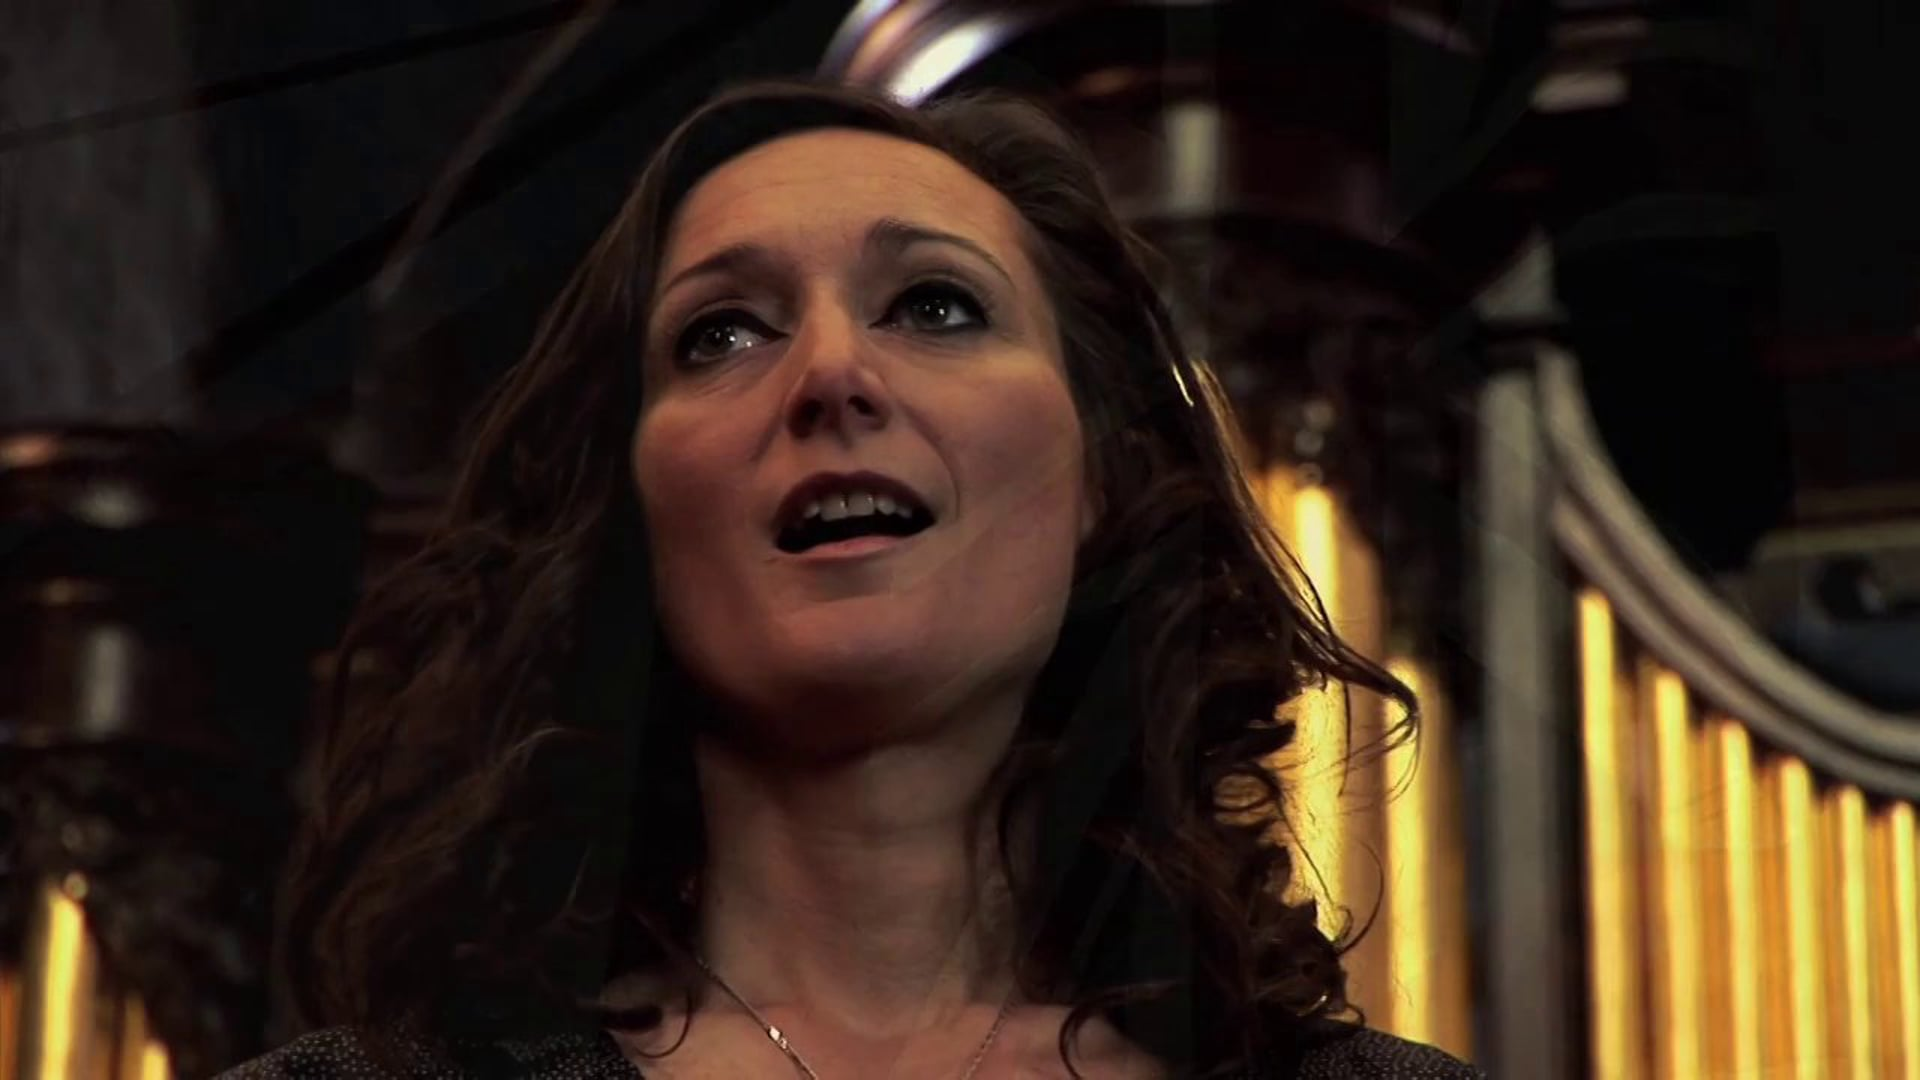 'I Vow To Thee'- Katherine Mount music video